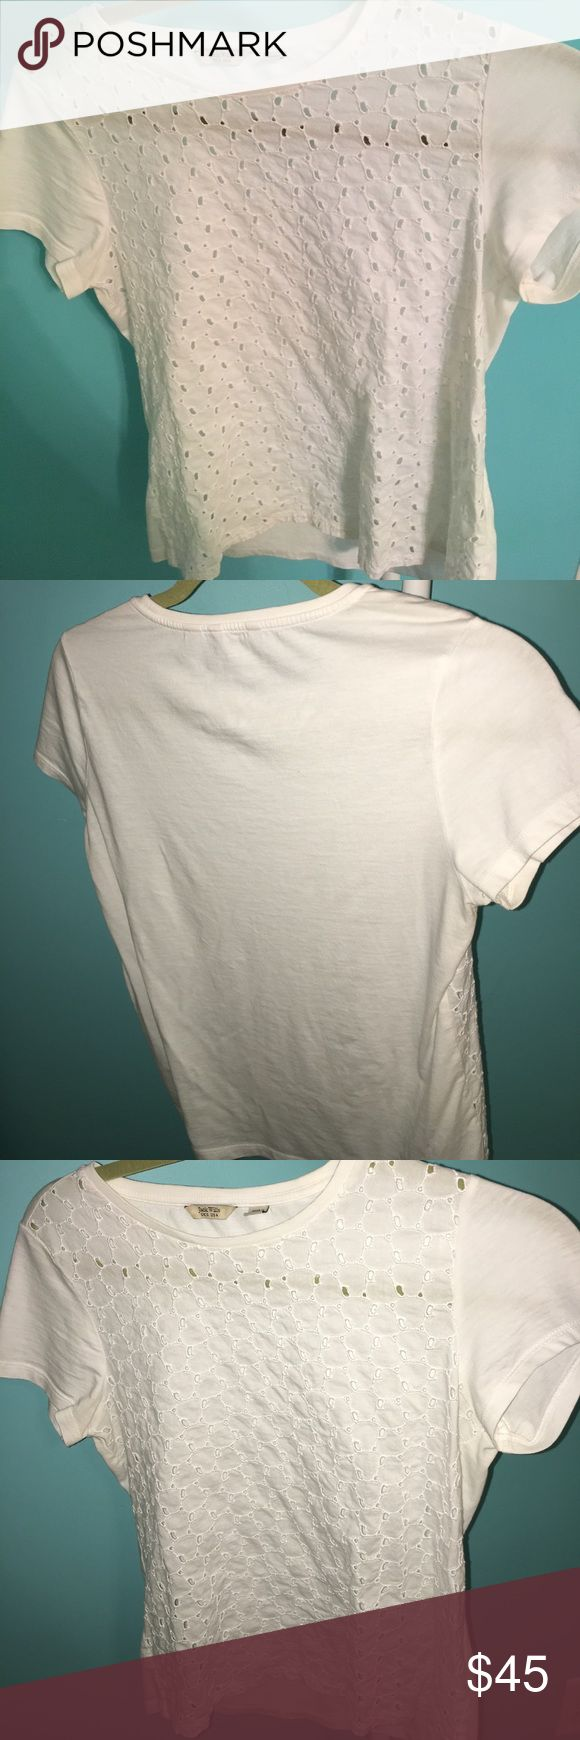 Jack Wills shirt Cute and comfy shirt from Jack Wills! DISCOUNTED SHIPPING!! Jack Wills Tops Tunics